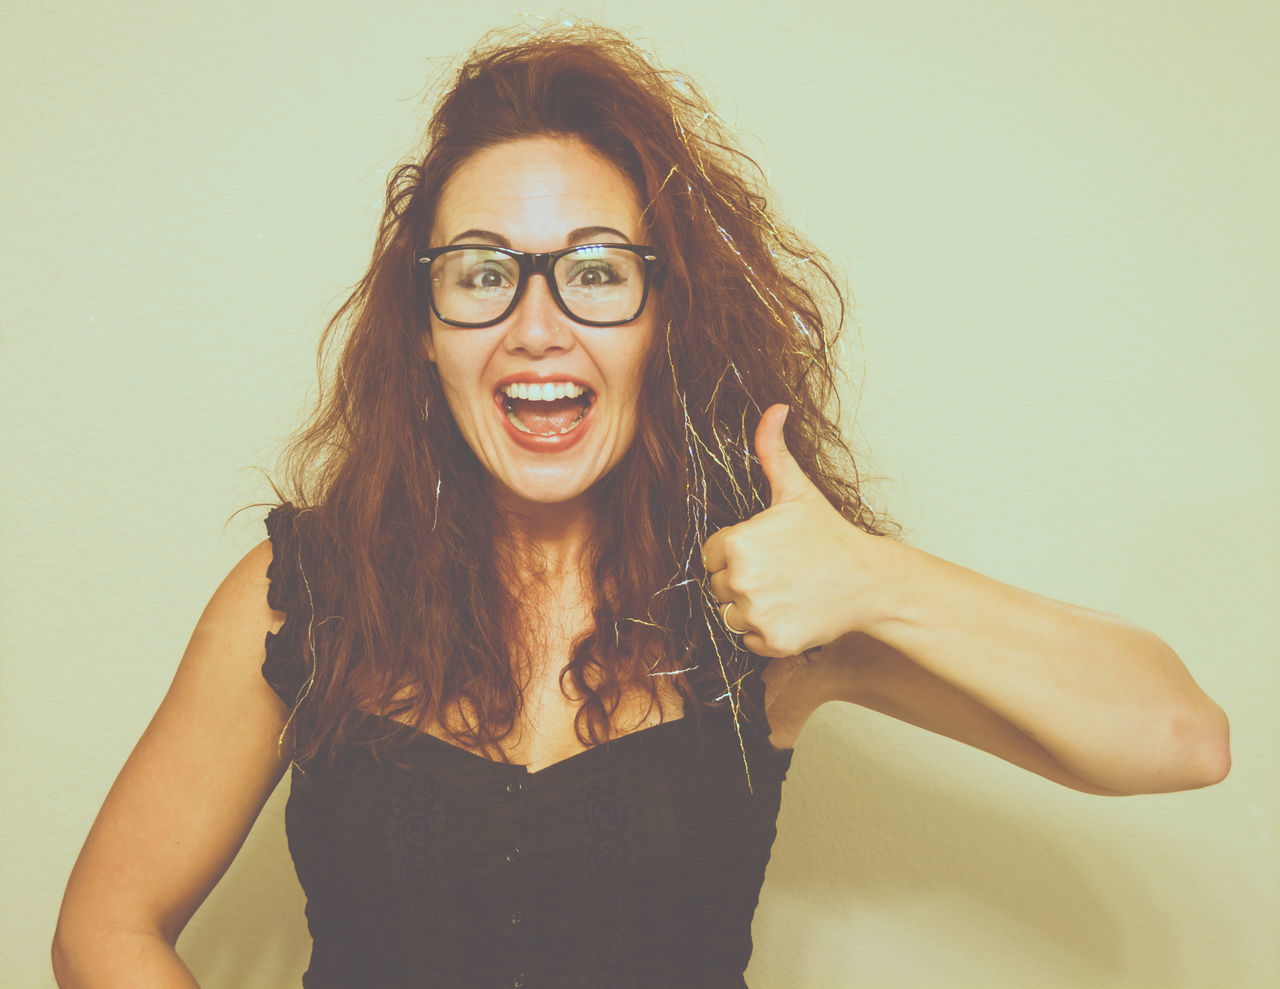 Portrait Of Smiling Young Woman Wearing Eyeglasses